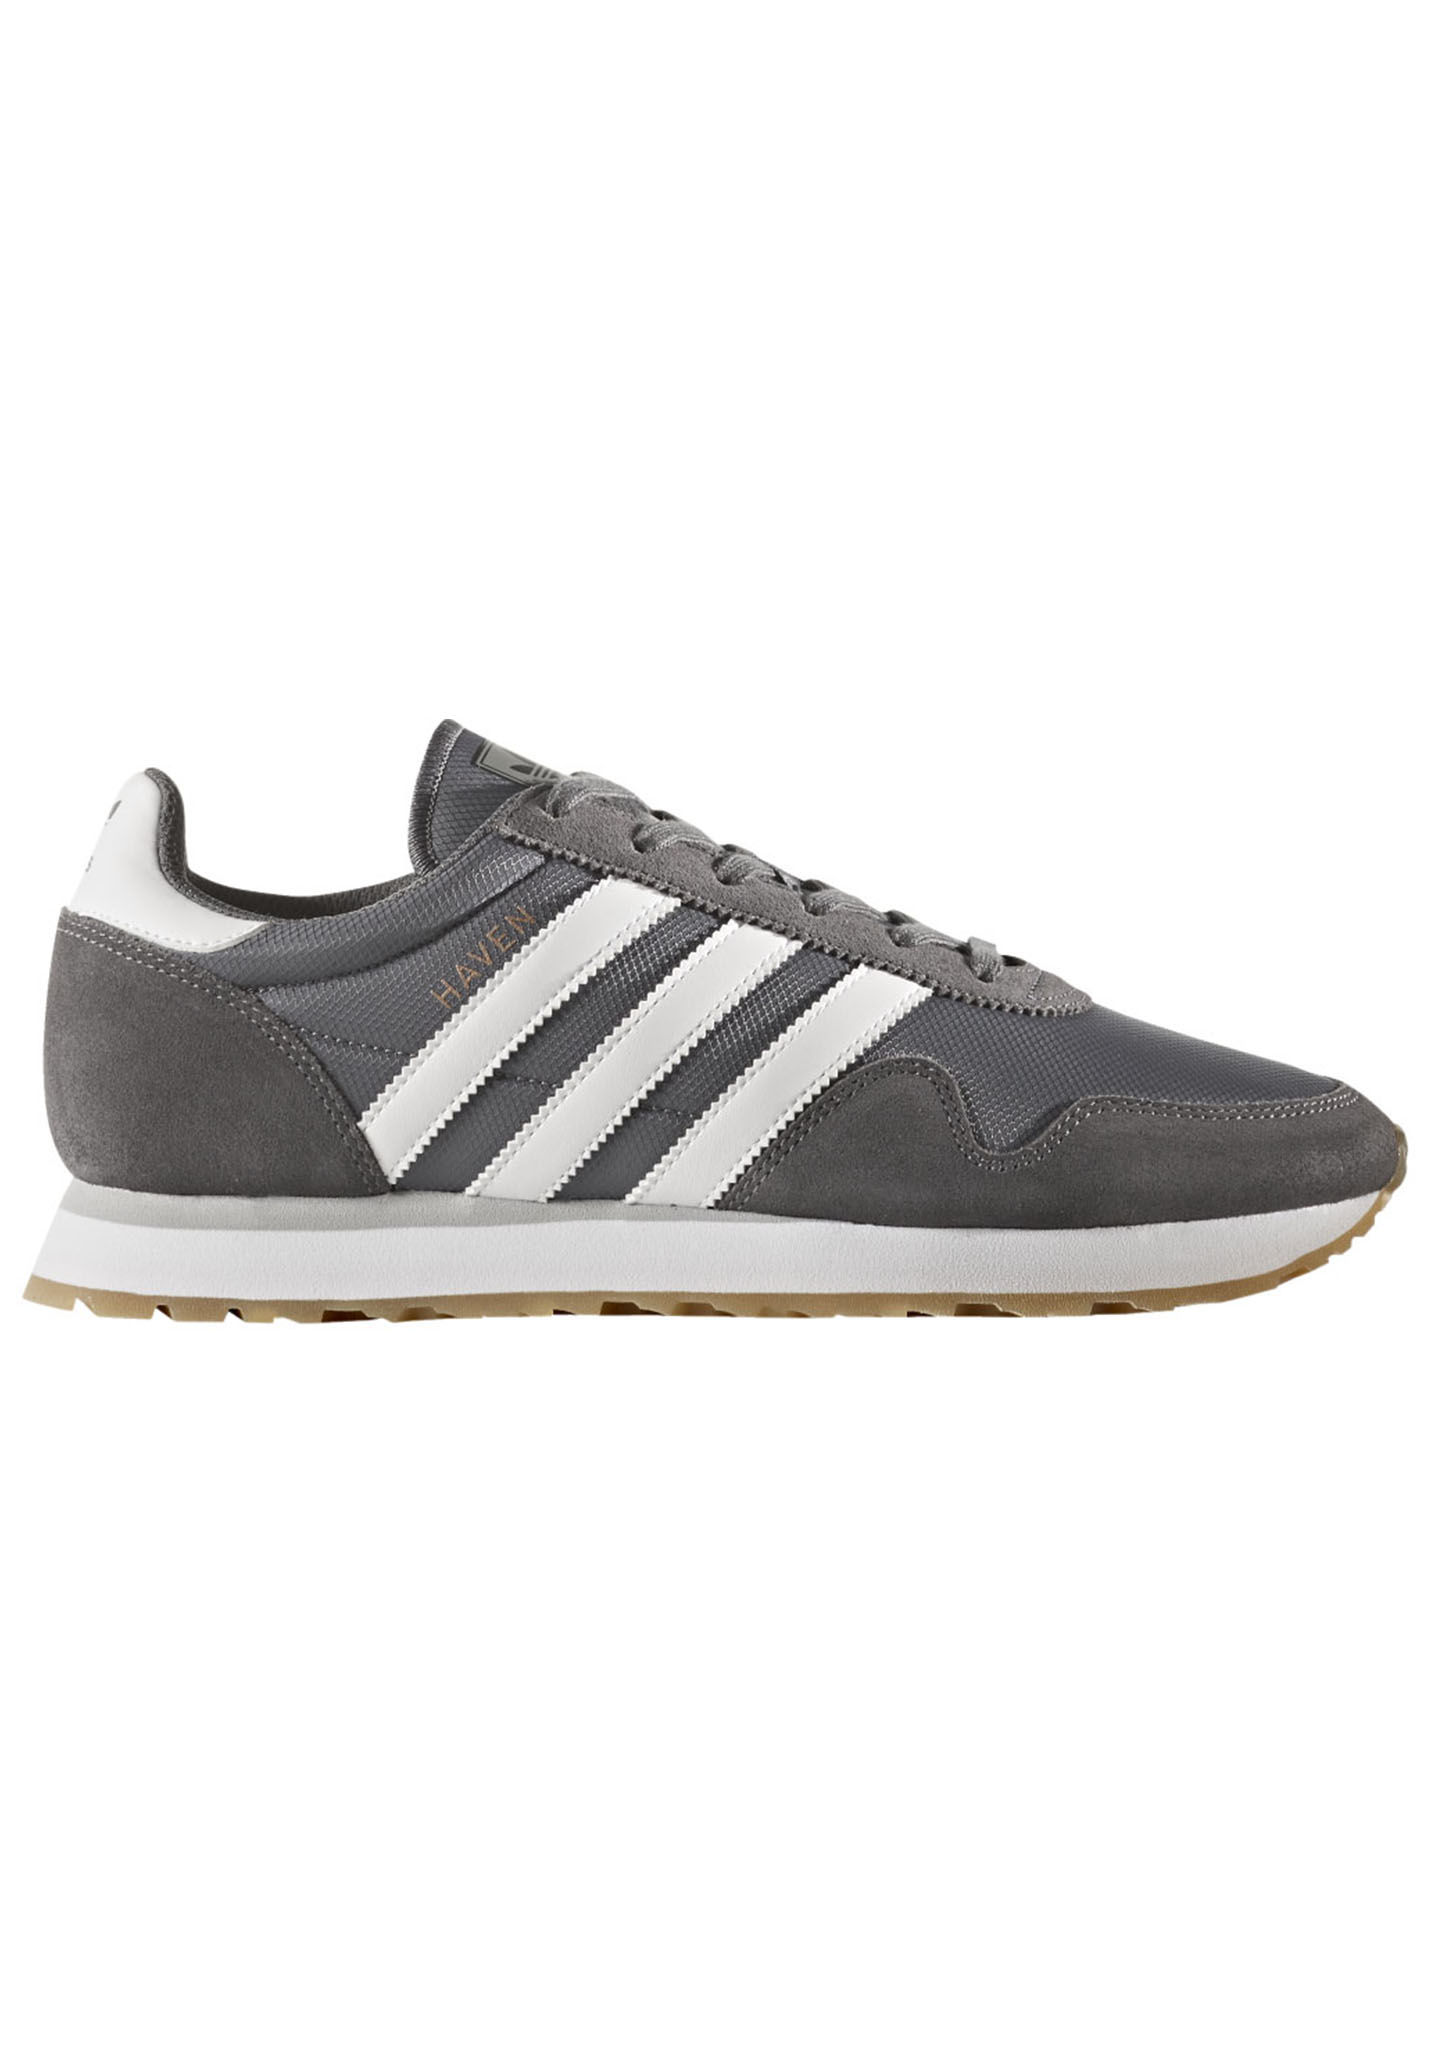 5935f5fc0e4 ADIDAS ORIGINALS Haven - Sneakers voor Heren - Grijs - Planet Sports